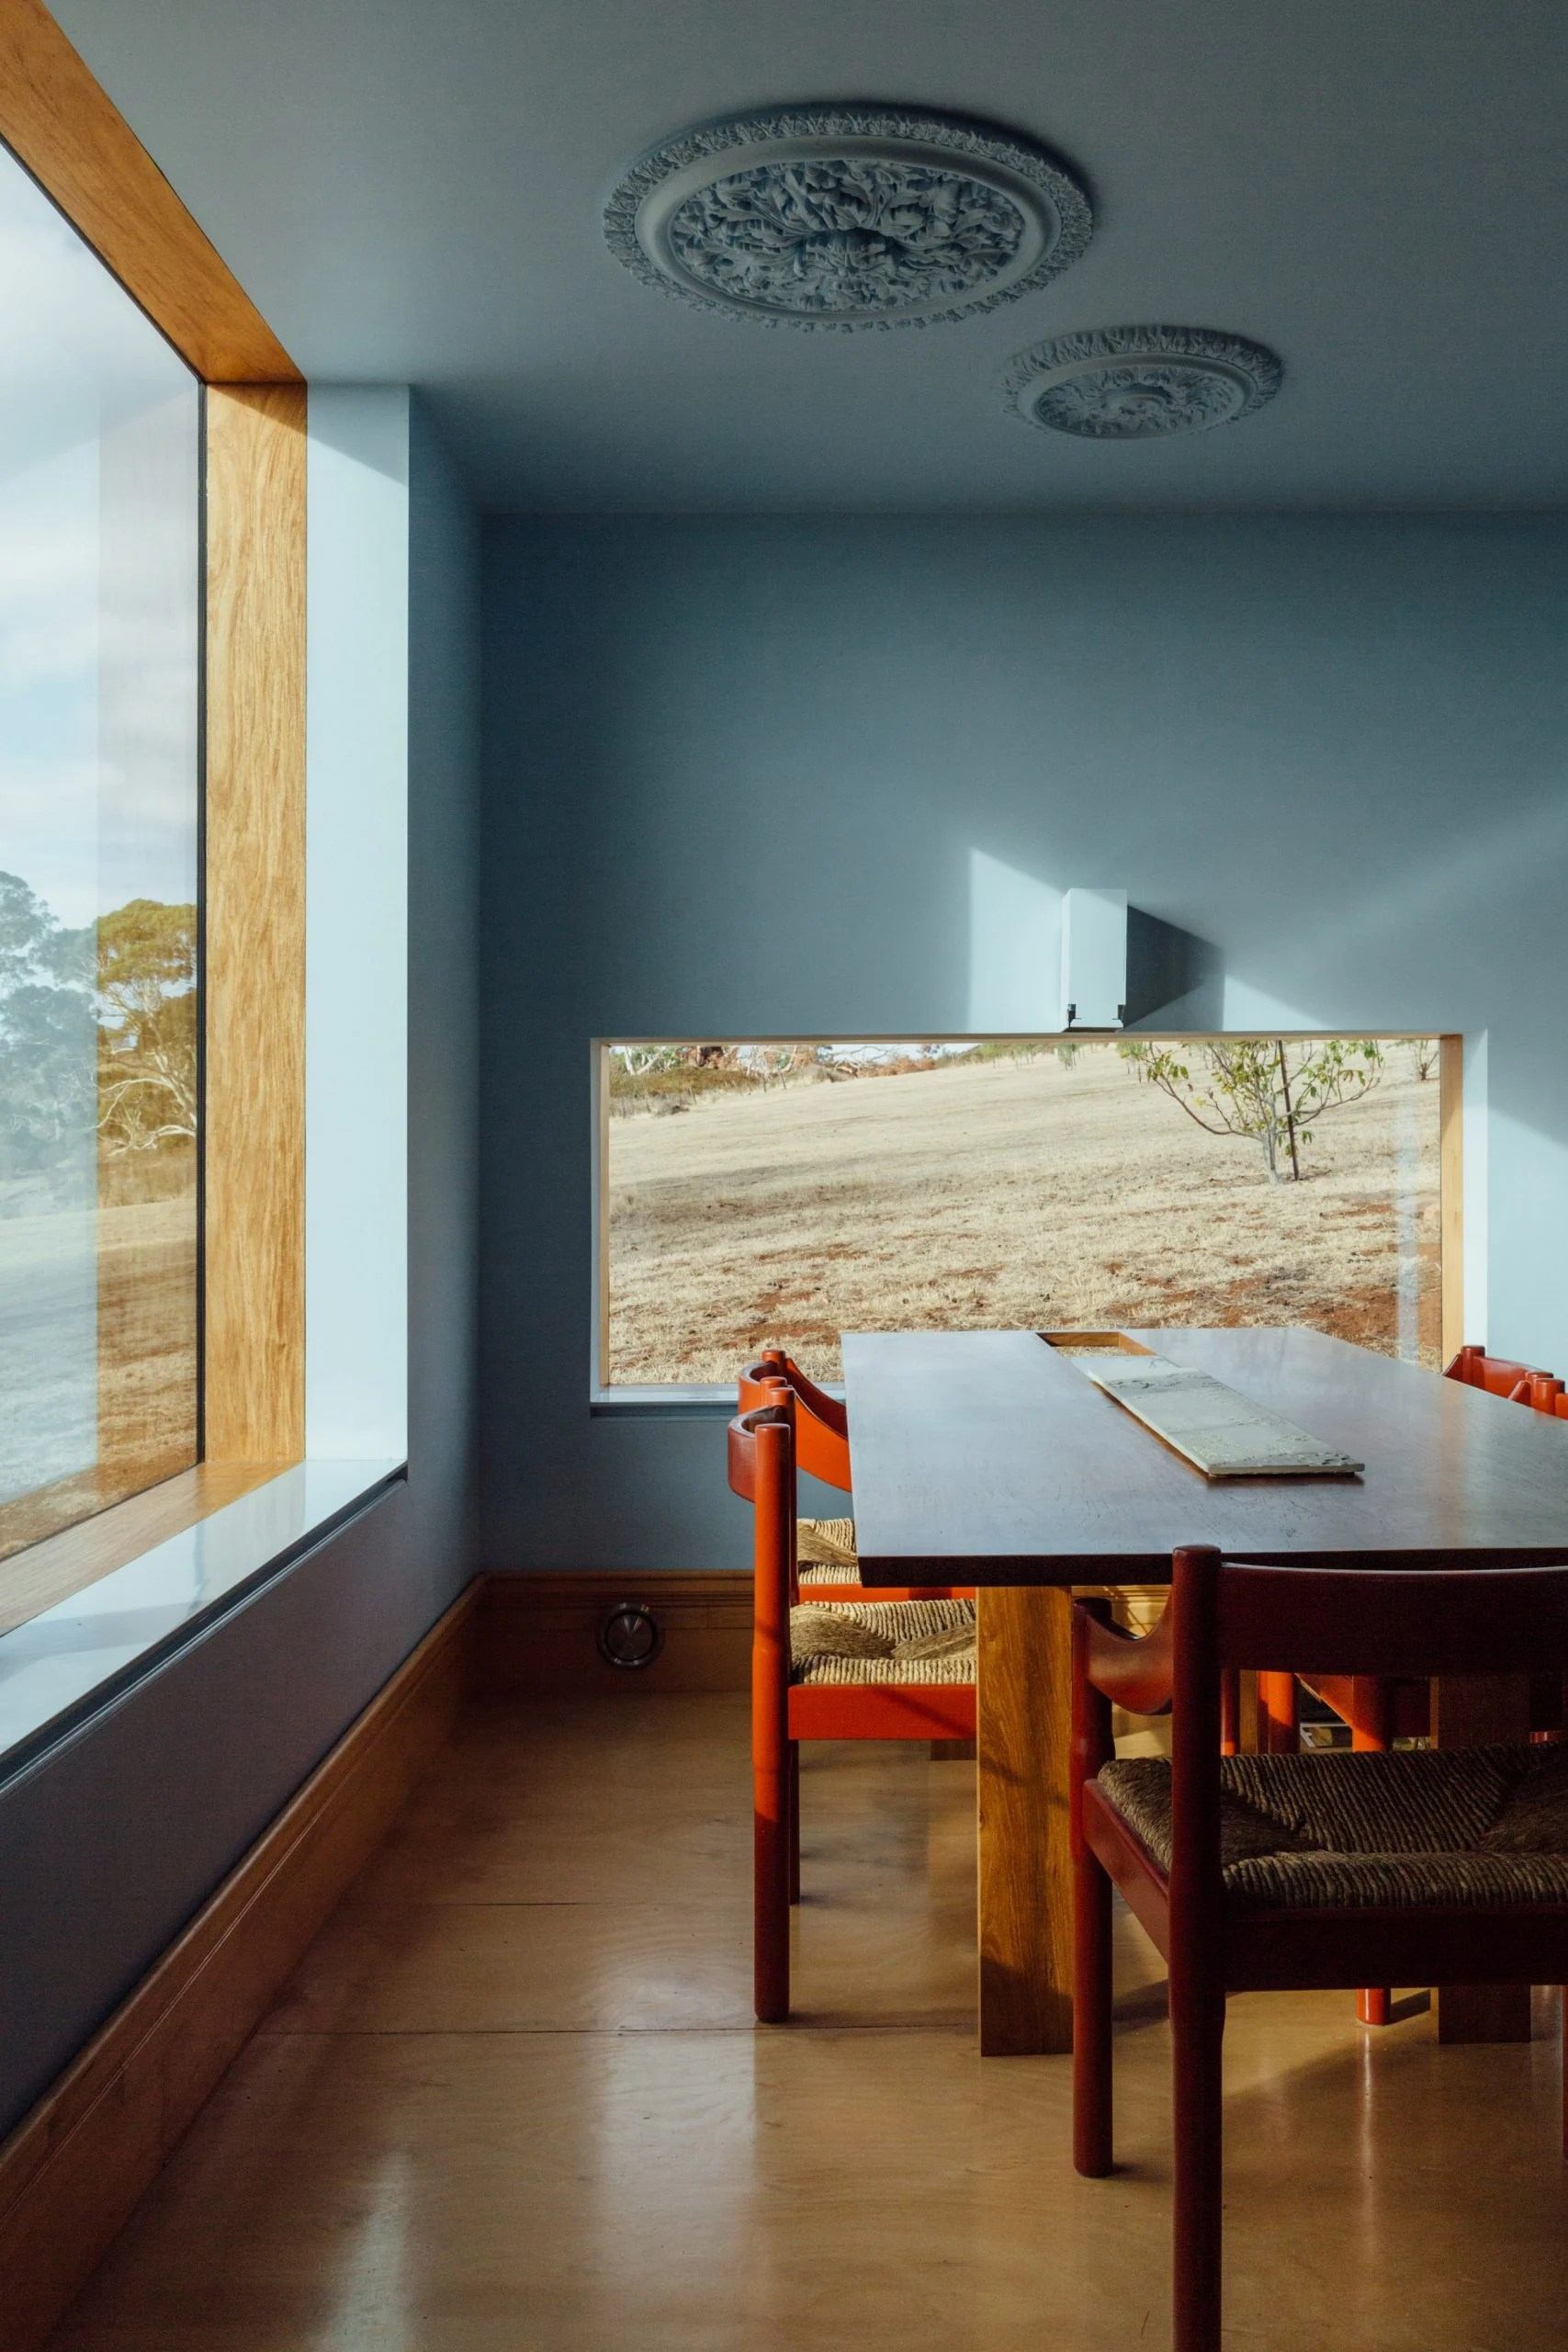 Longhouse in Victoria, Australia designed by Partners Hill